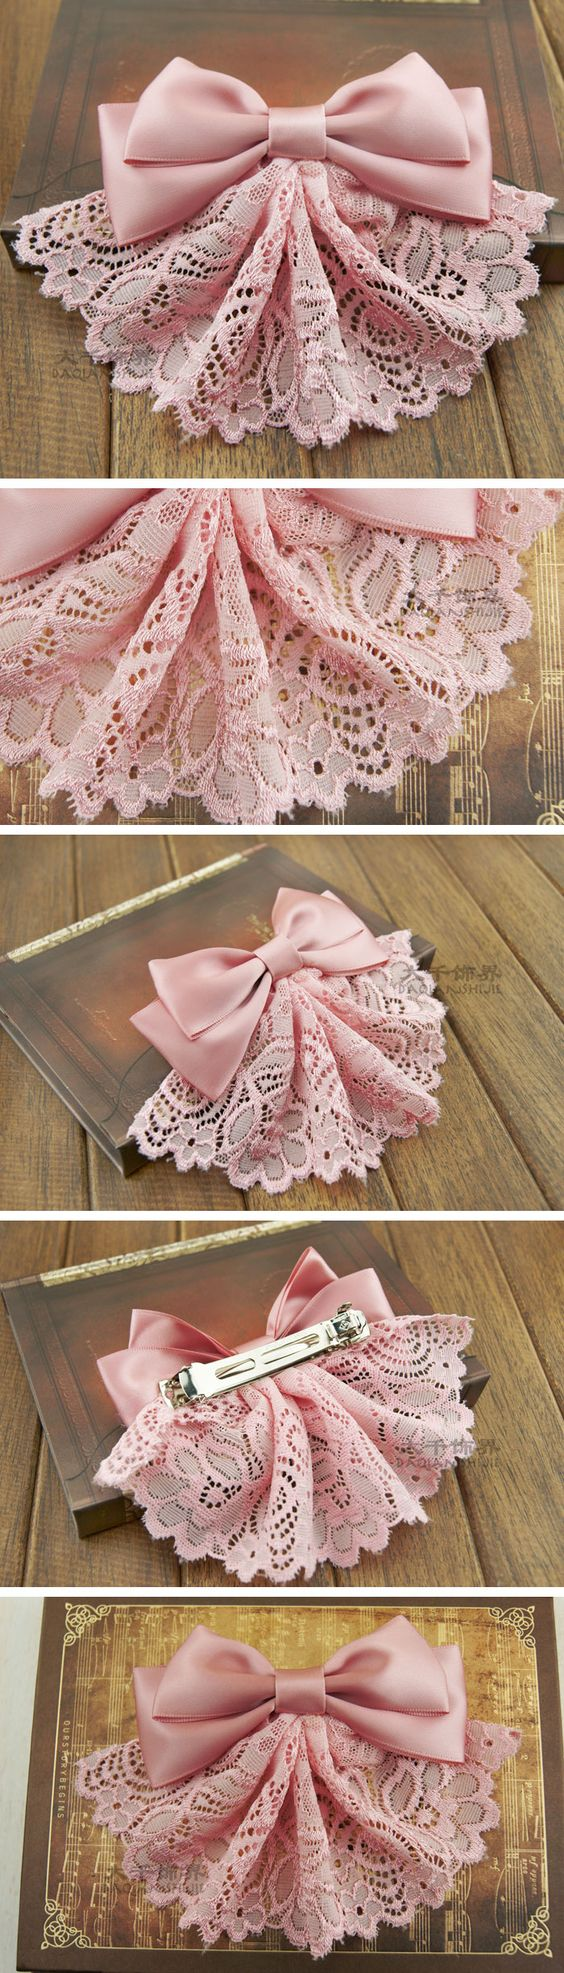 Lace bow hair accessories: